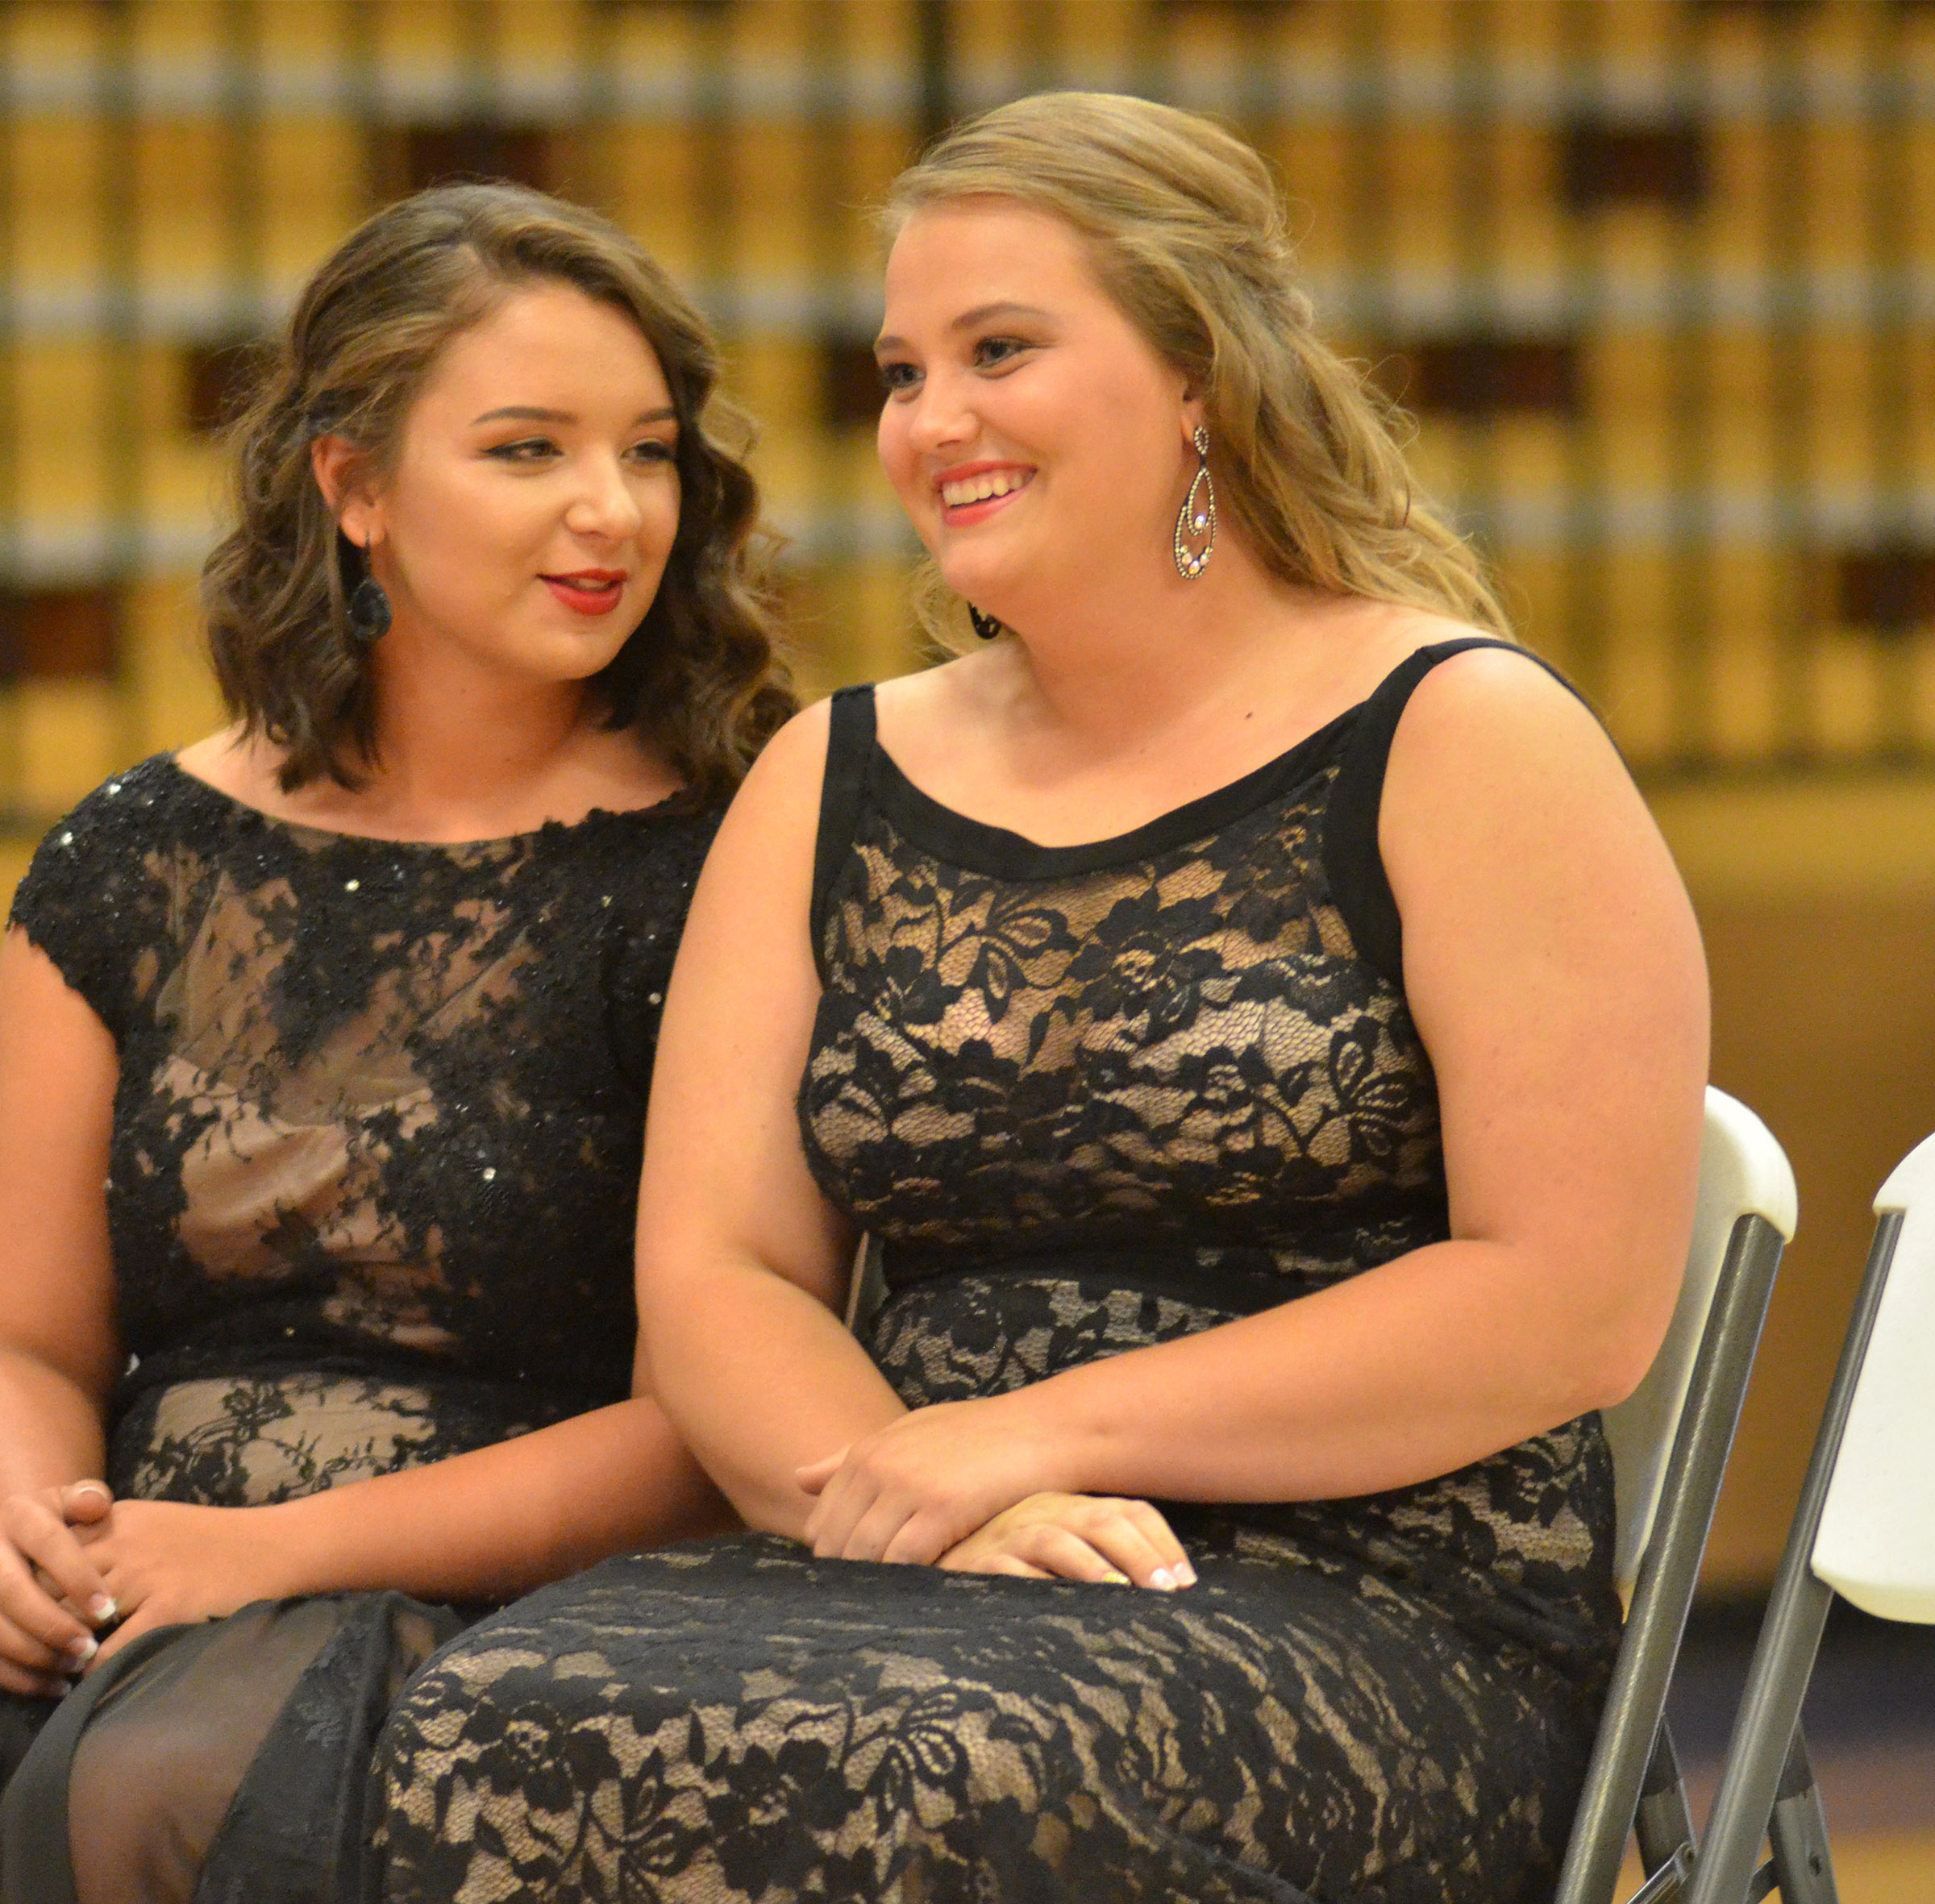 Kailey Morris, at left, and Brenna Wethington share a laugh during Class Night.